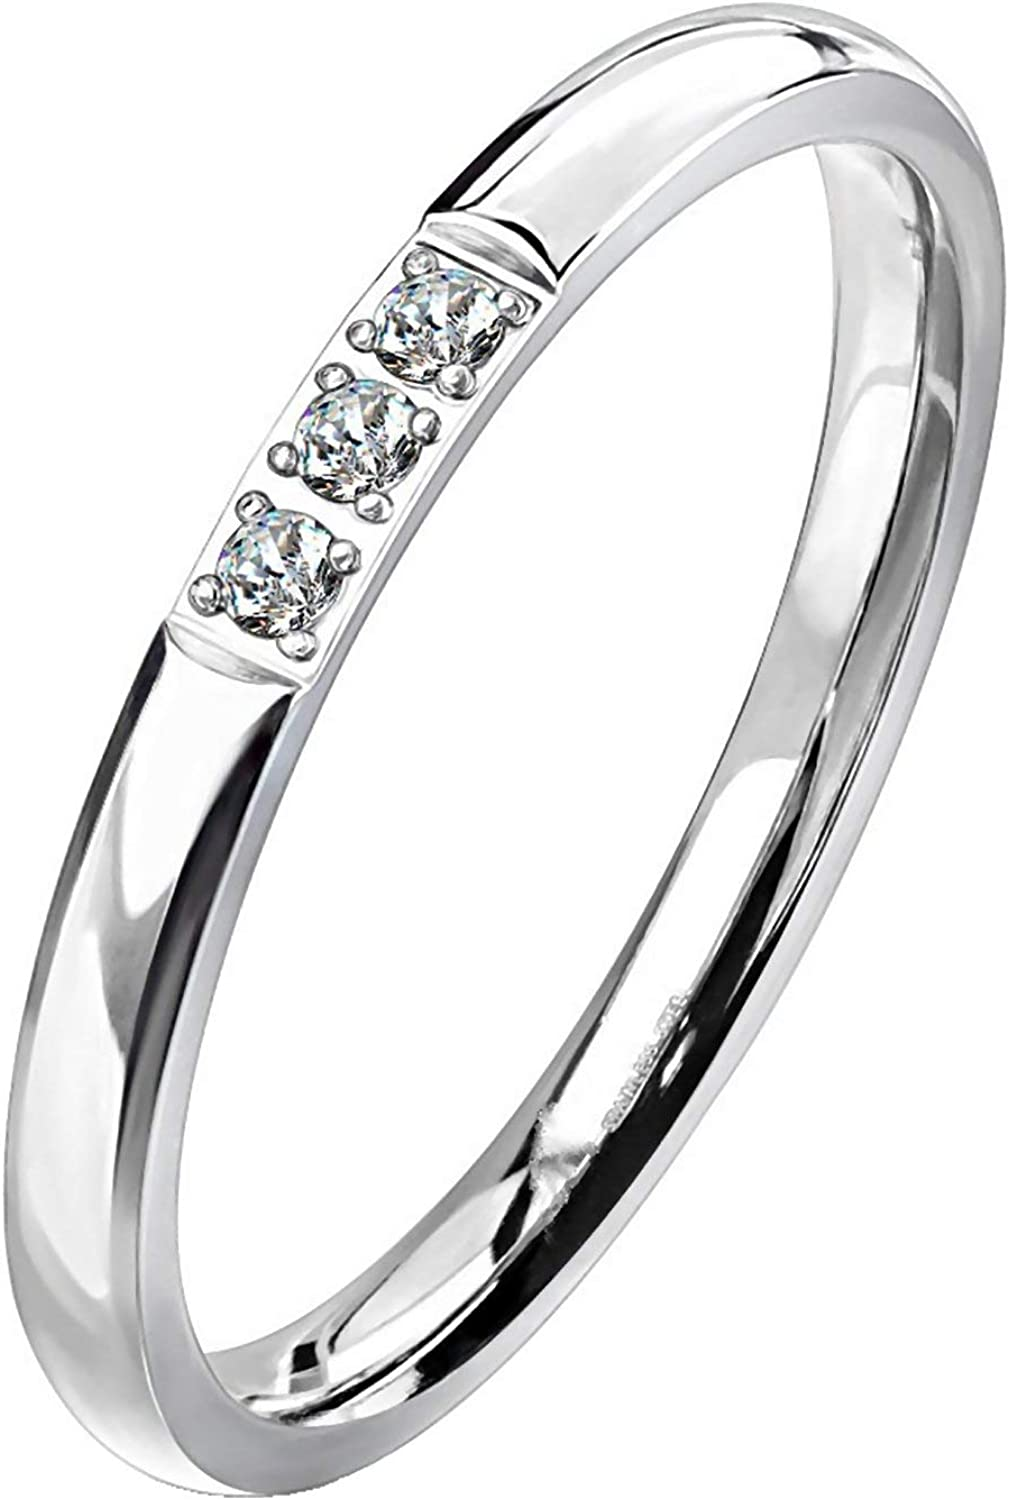 Fantasy Forge Jewelry Minimalist Three Stone Anniversary Ring Womens Stainless Steel Cubic Zirconia Promise Band Sizes 5-9 2mm